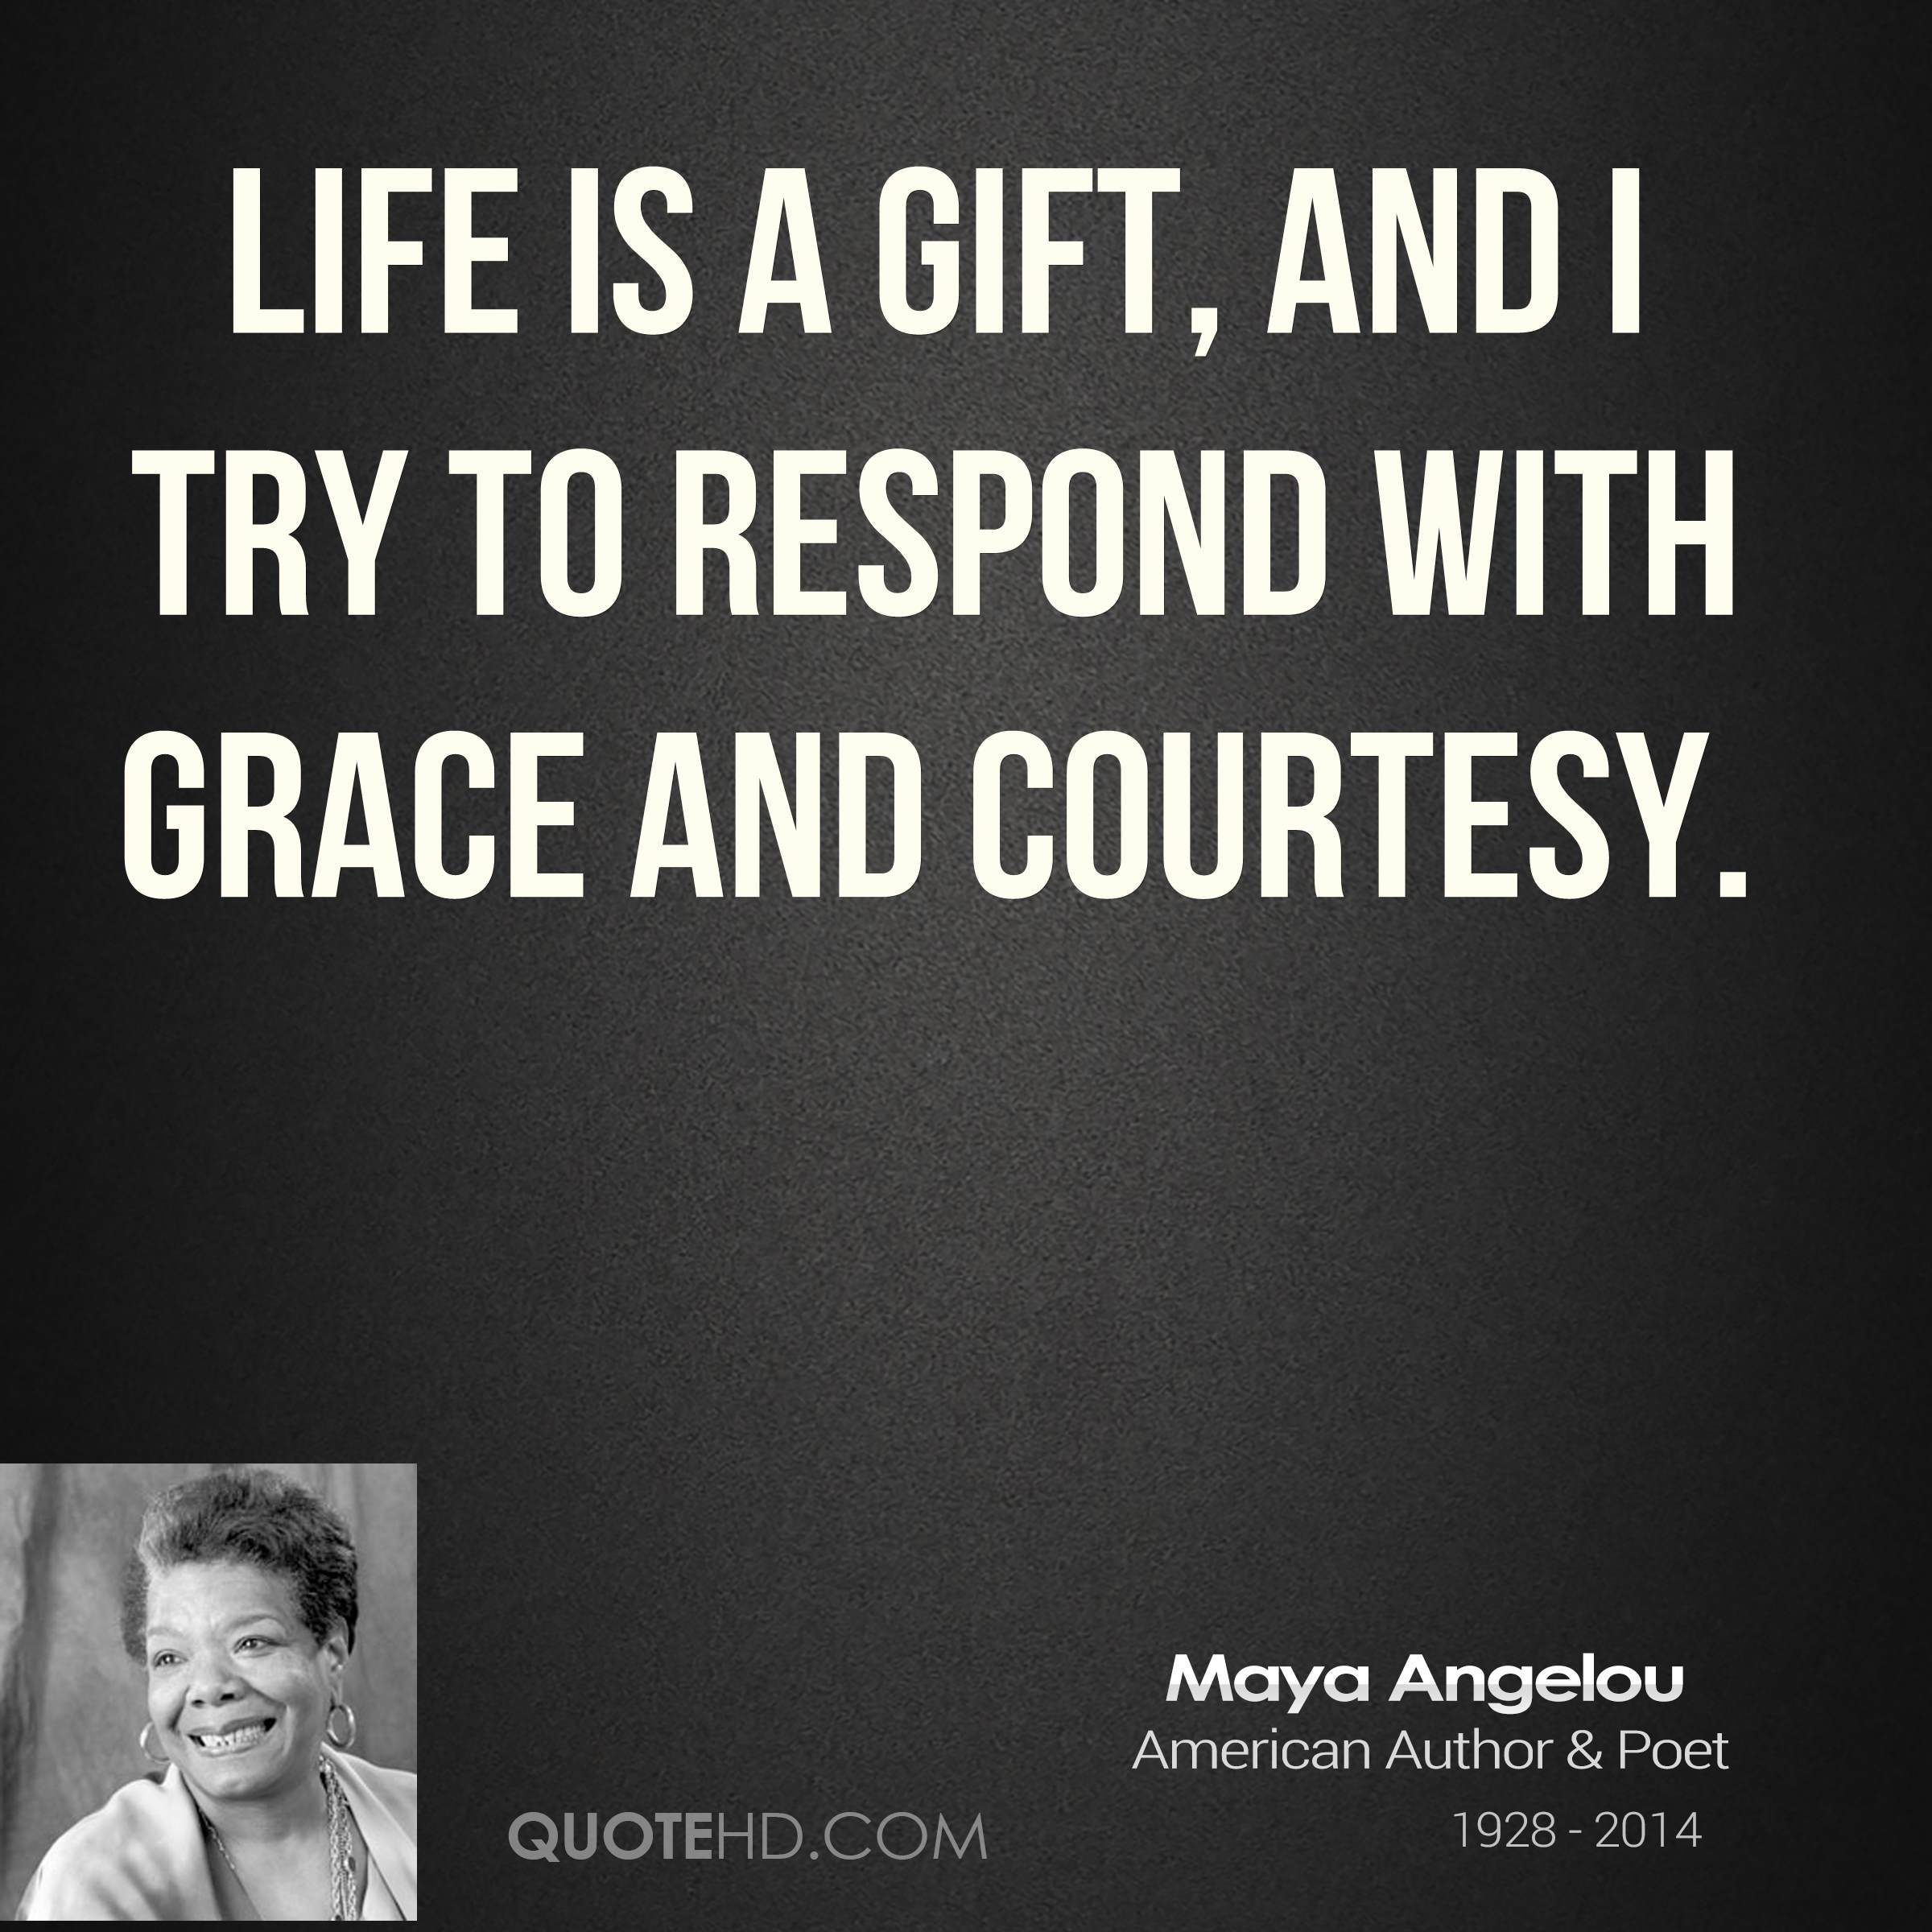 Maya Angelou Quotes: Maya Angelou Quotes On Homeless. QuotesGram